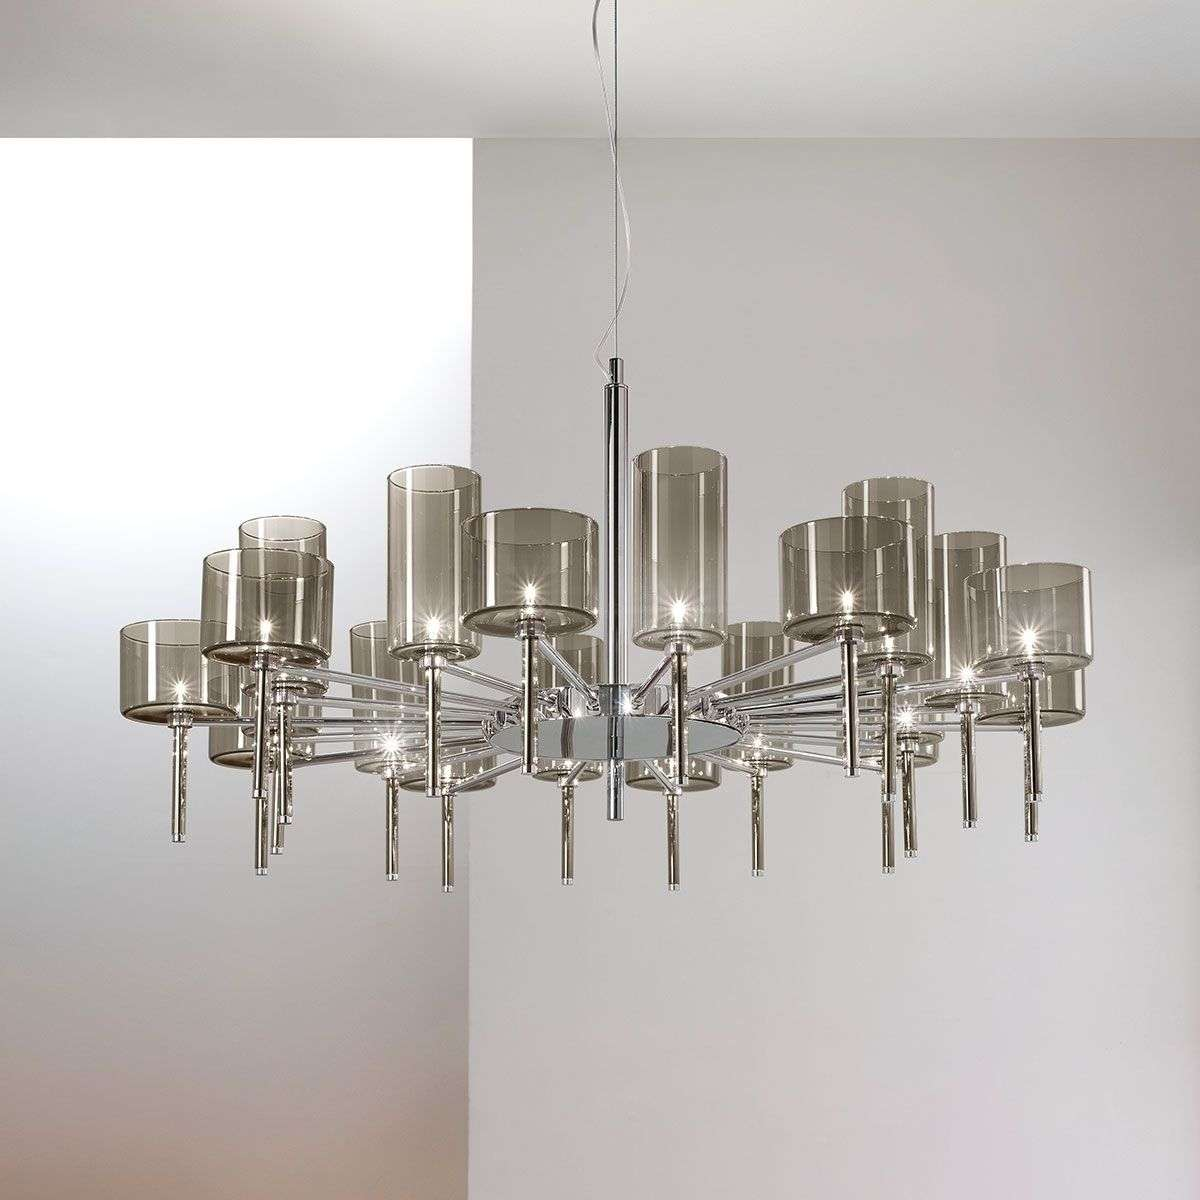 Designer chandelier Spillray with glass shades-1088049-31